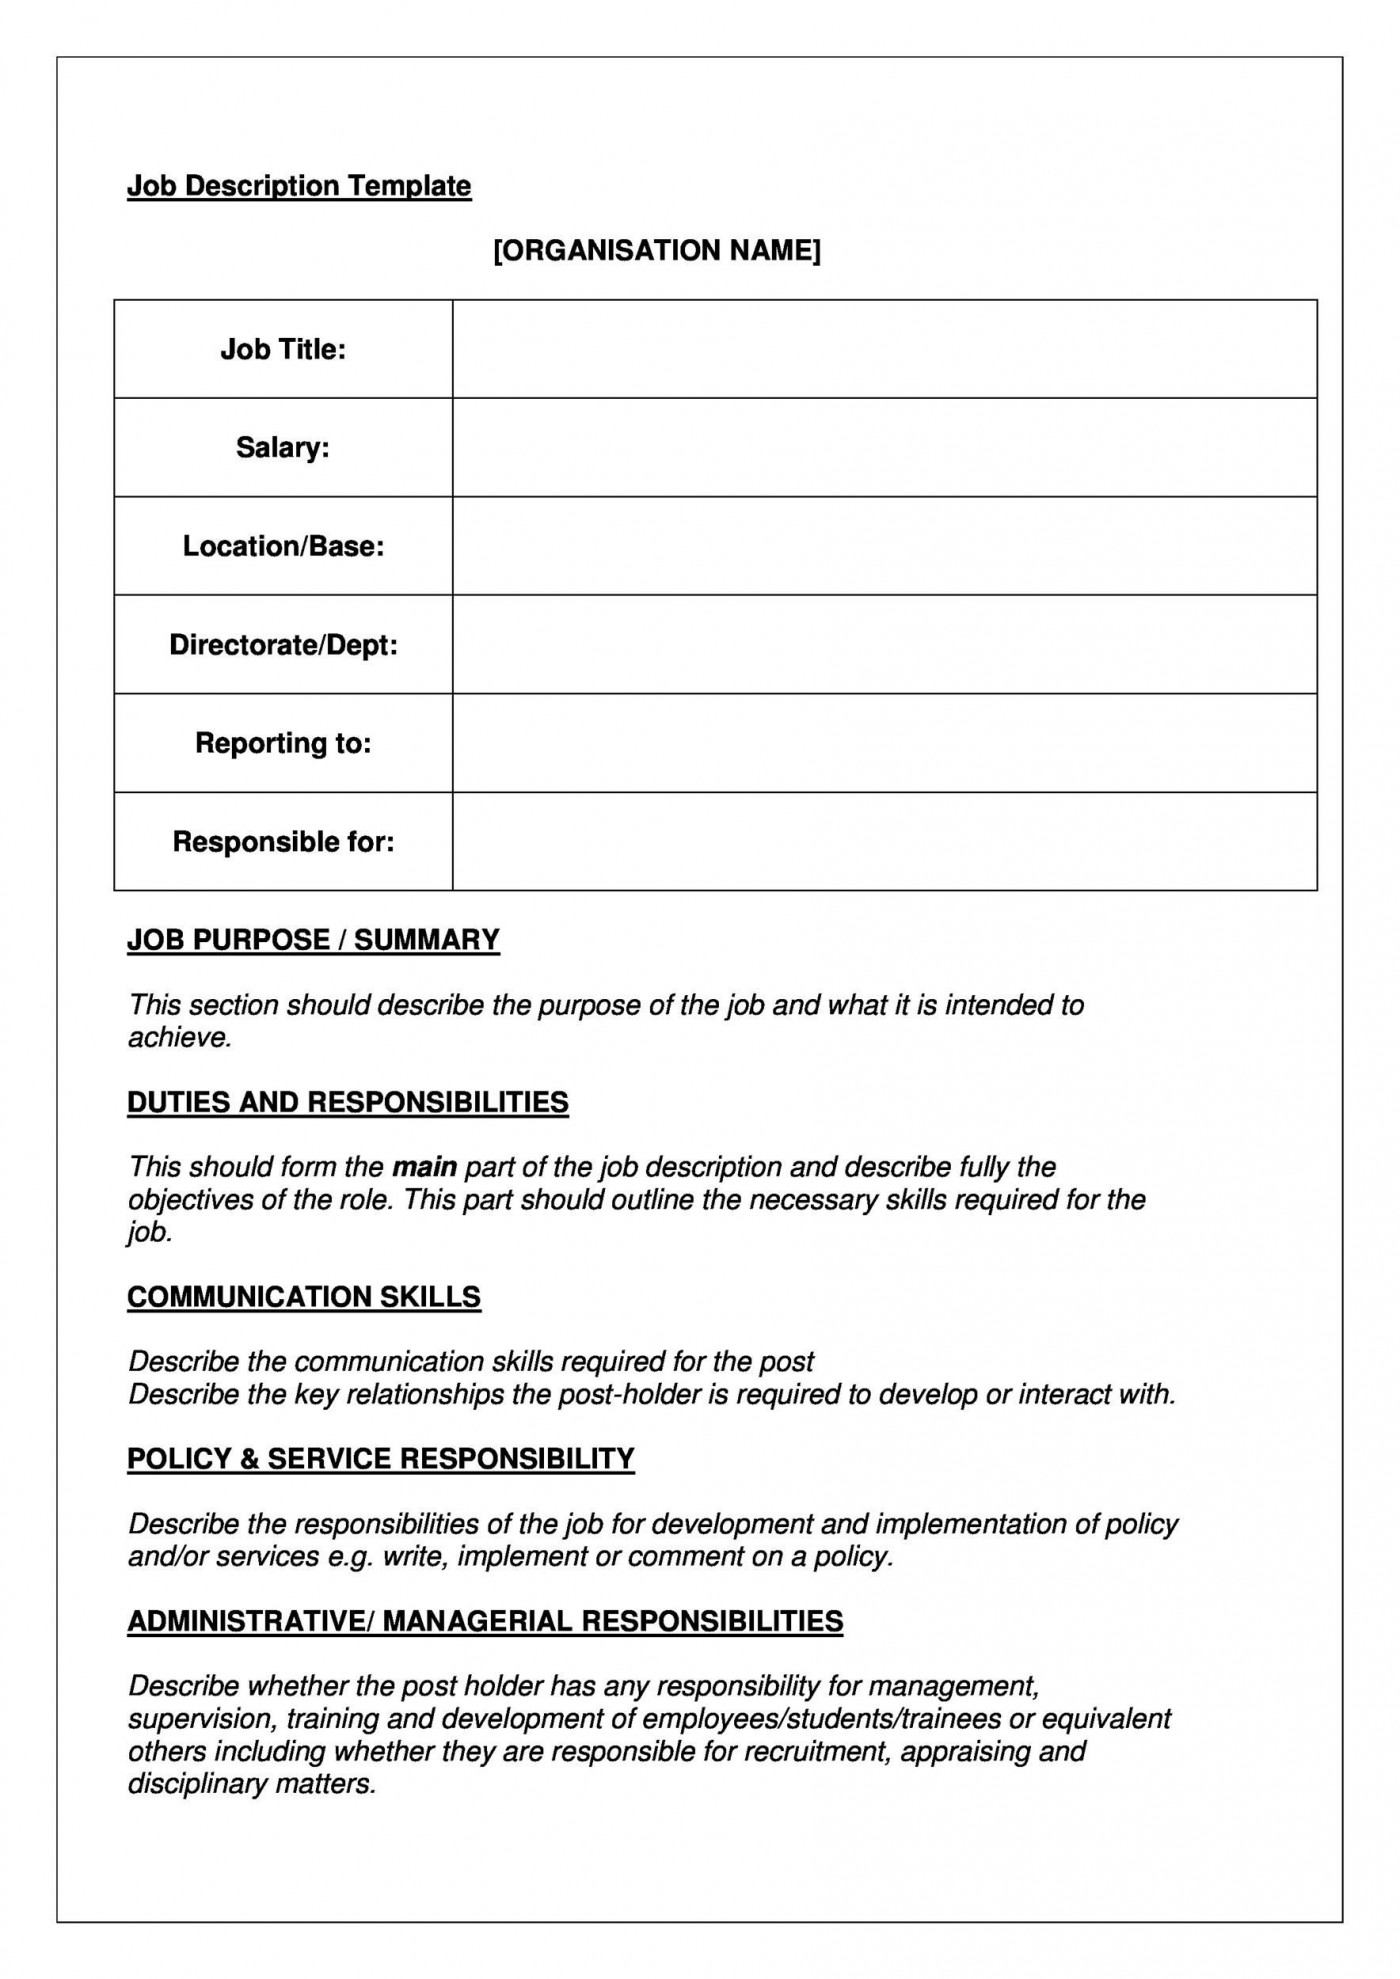 005 Stupendou Blank Job Description Template Picture  Word Free Printable1400